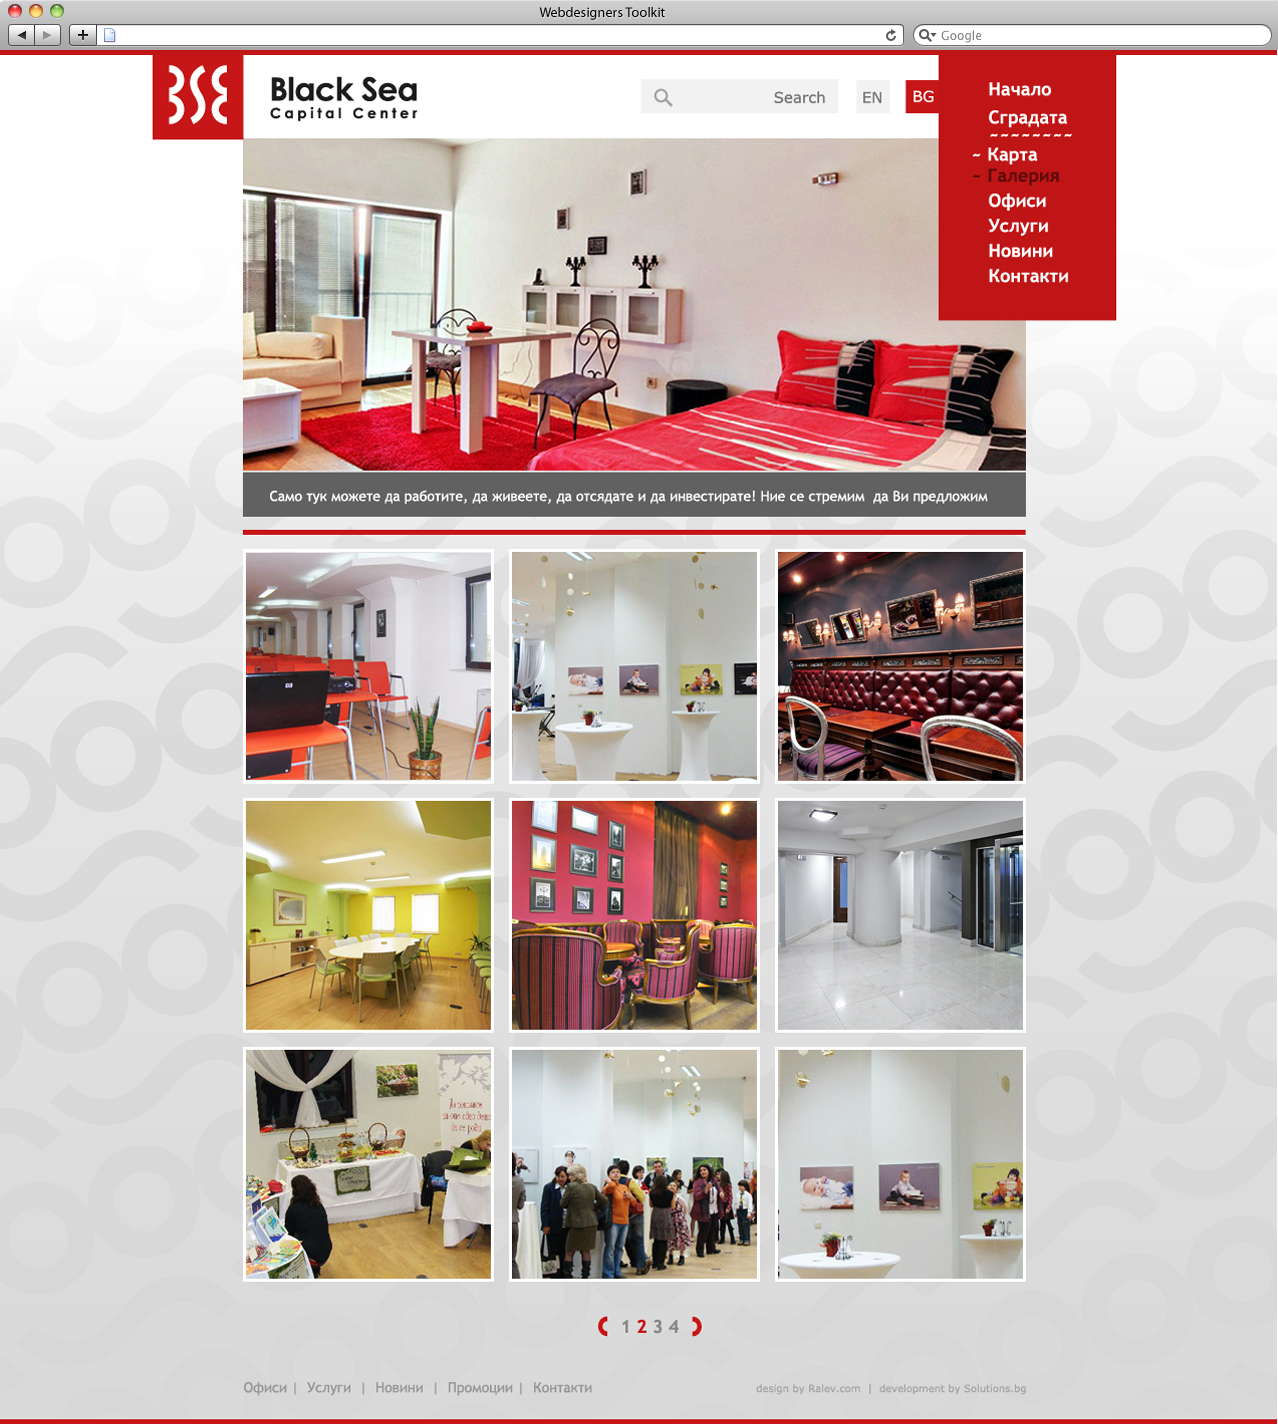 commercial building gallery design